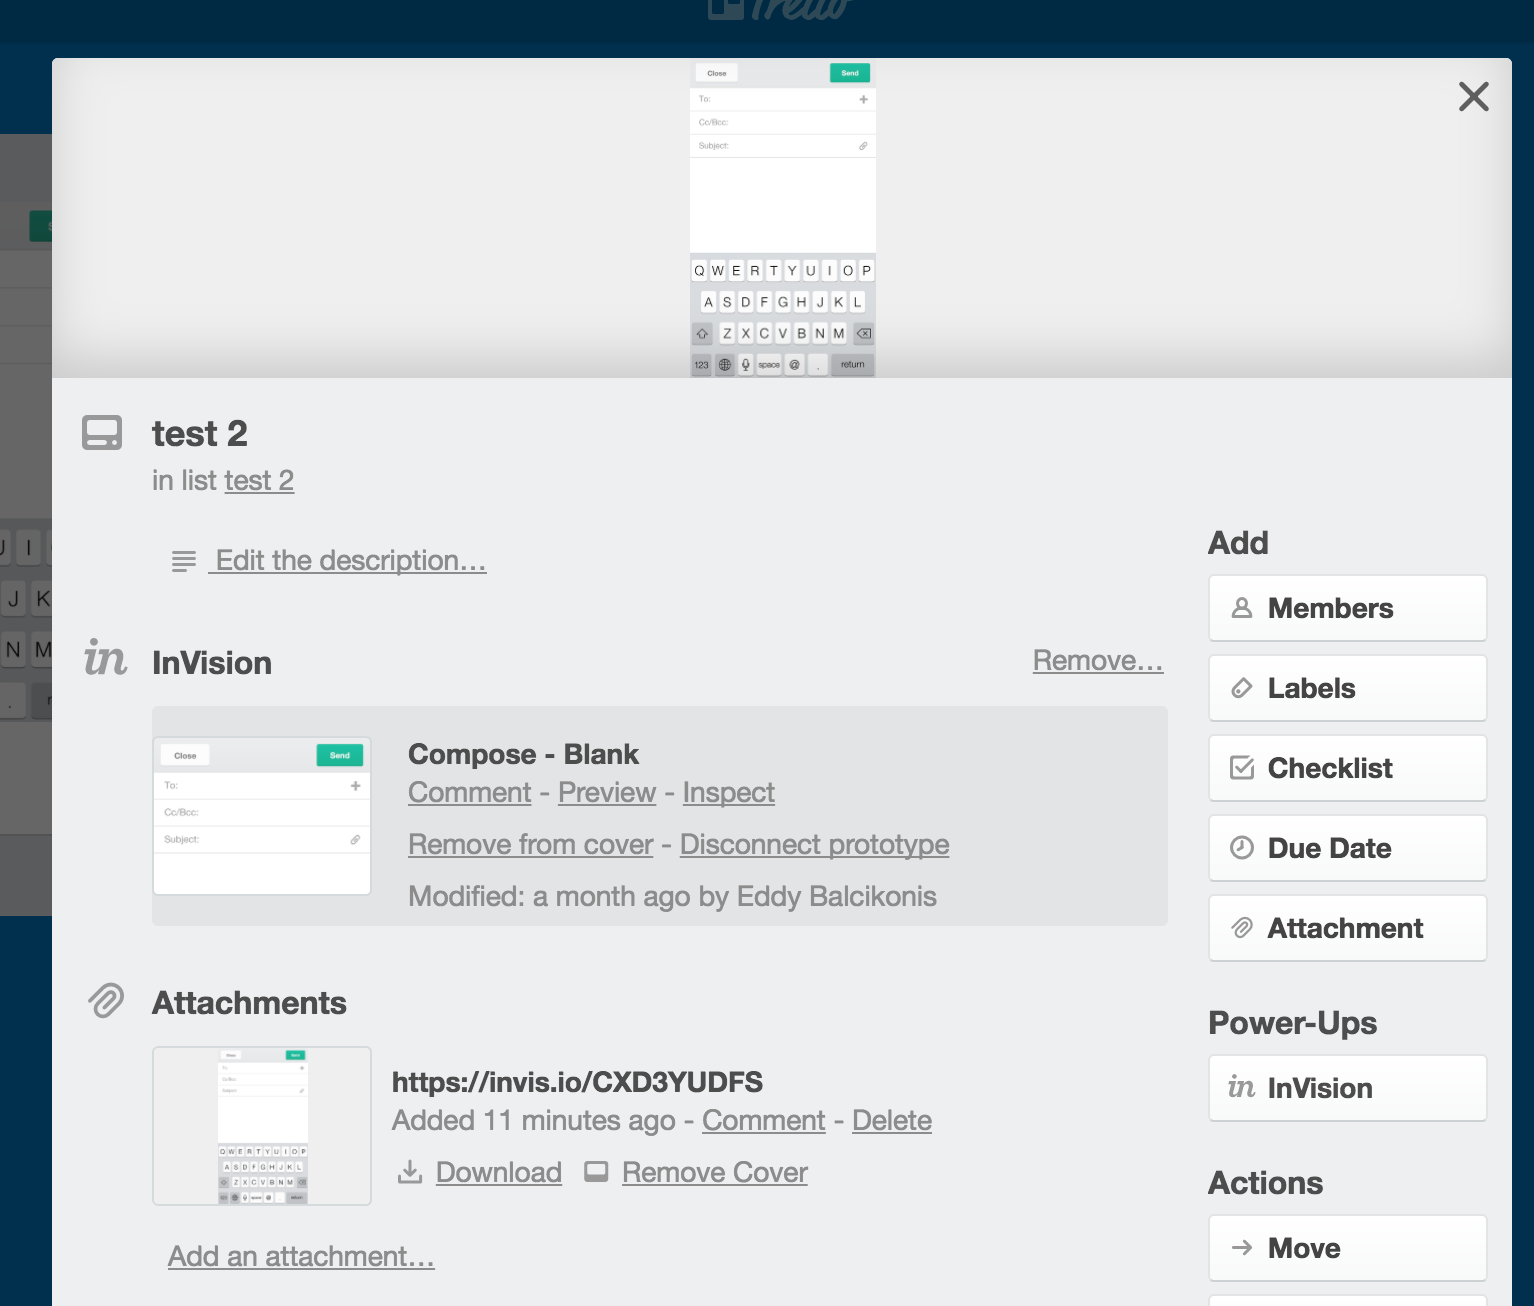 invision-v7-trello-card.png